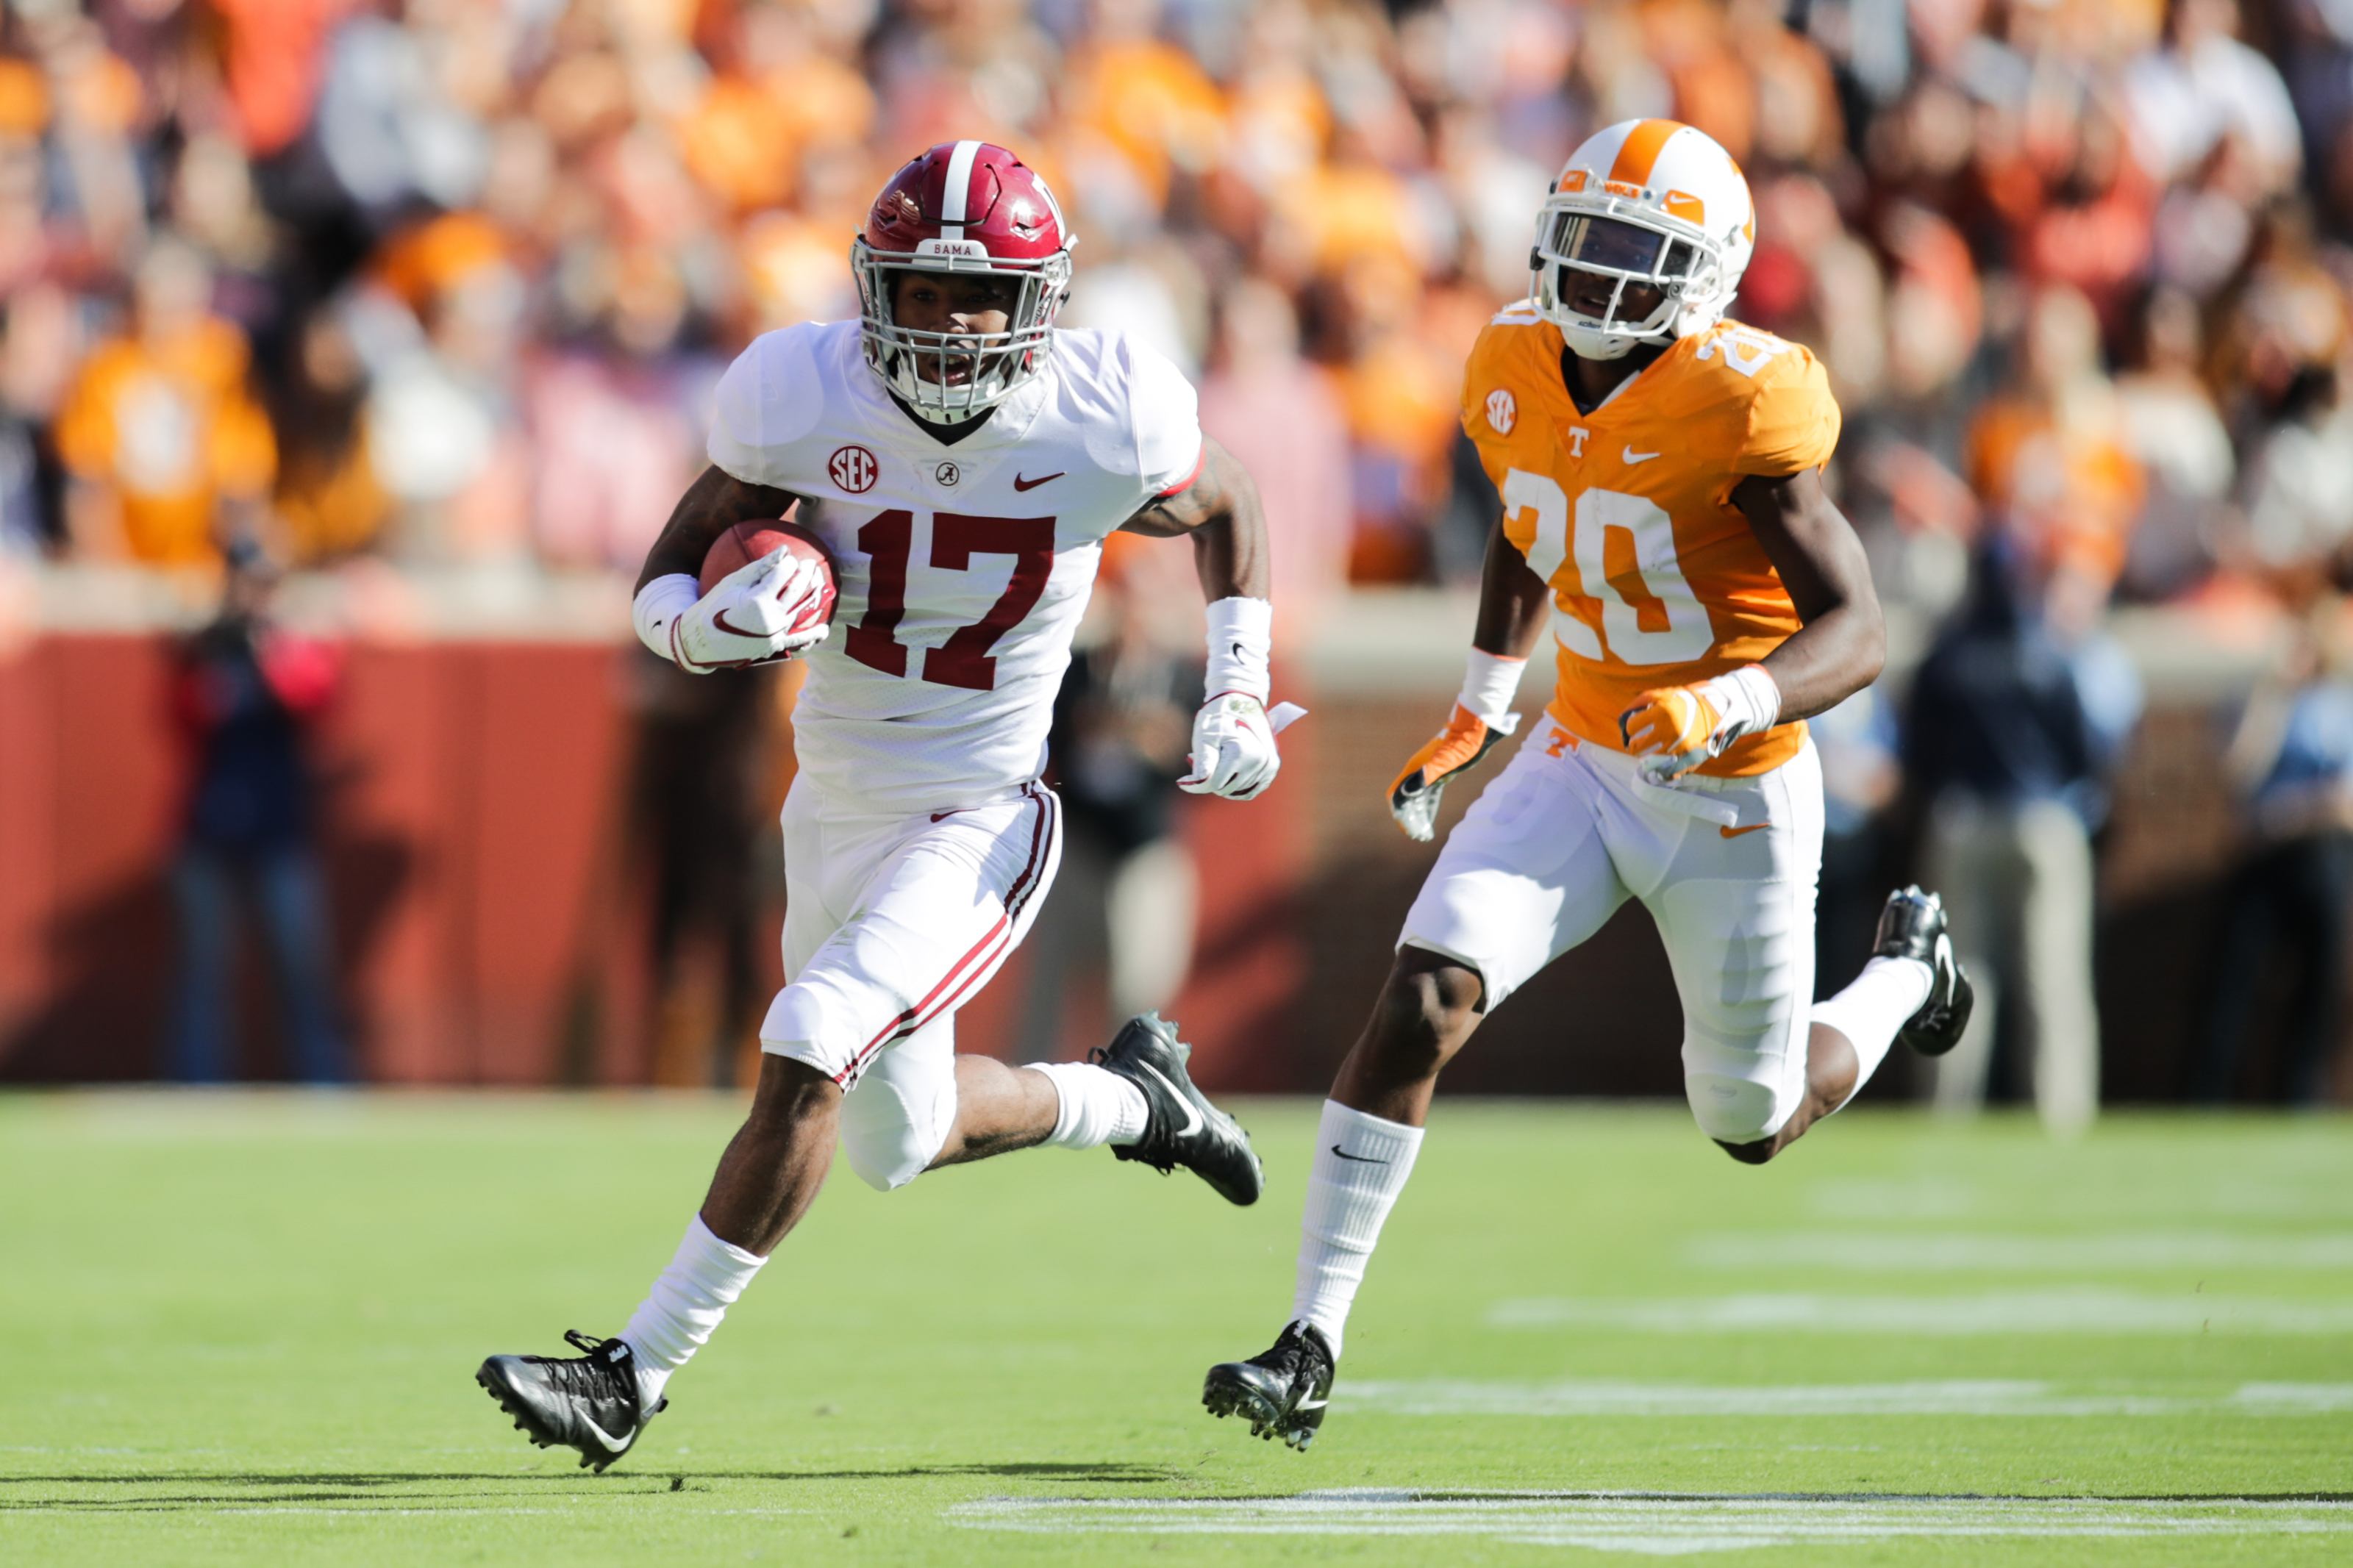 Tennessee football: Vols suspending Bryce Thompson was an easy move